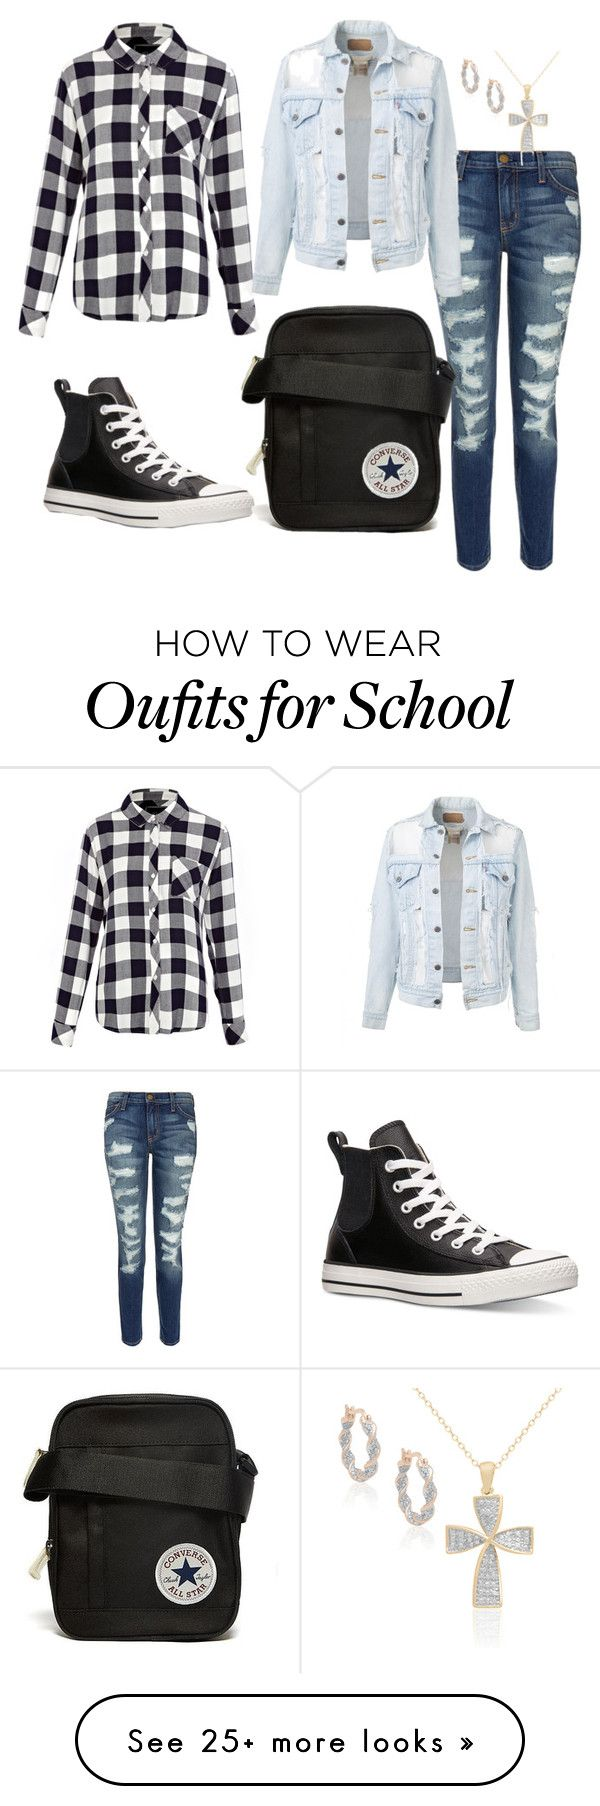 """School"" by setterforlife on Polyvore featuring Rails, Current/Elliott, Converse and Finesque"